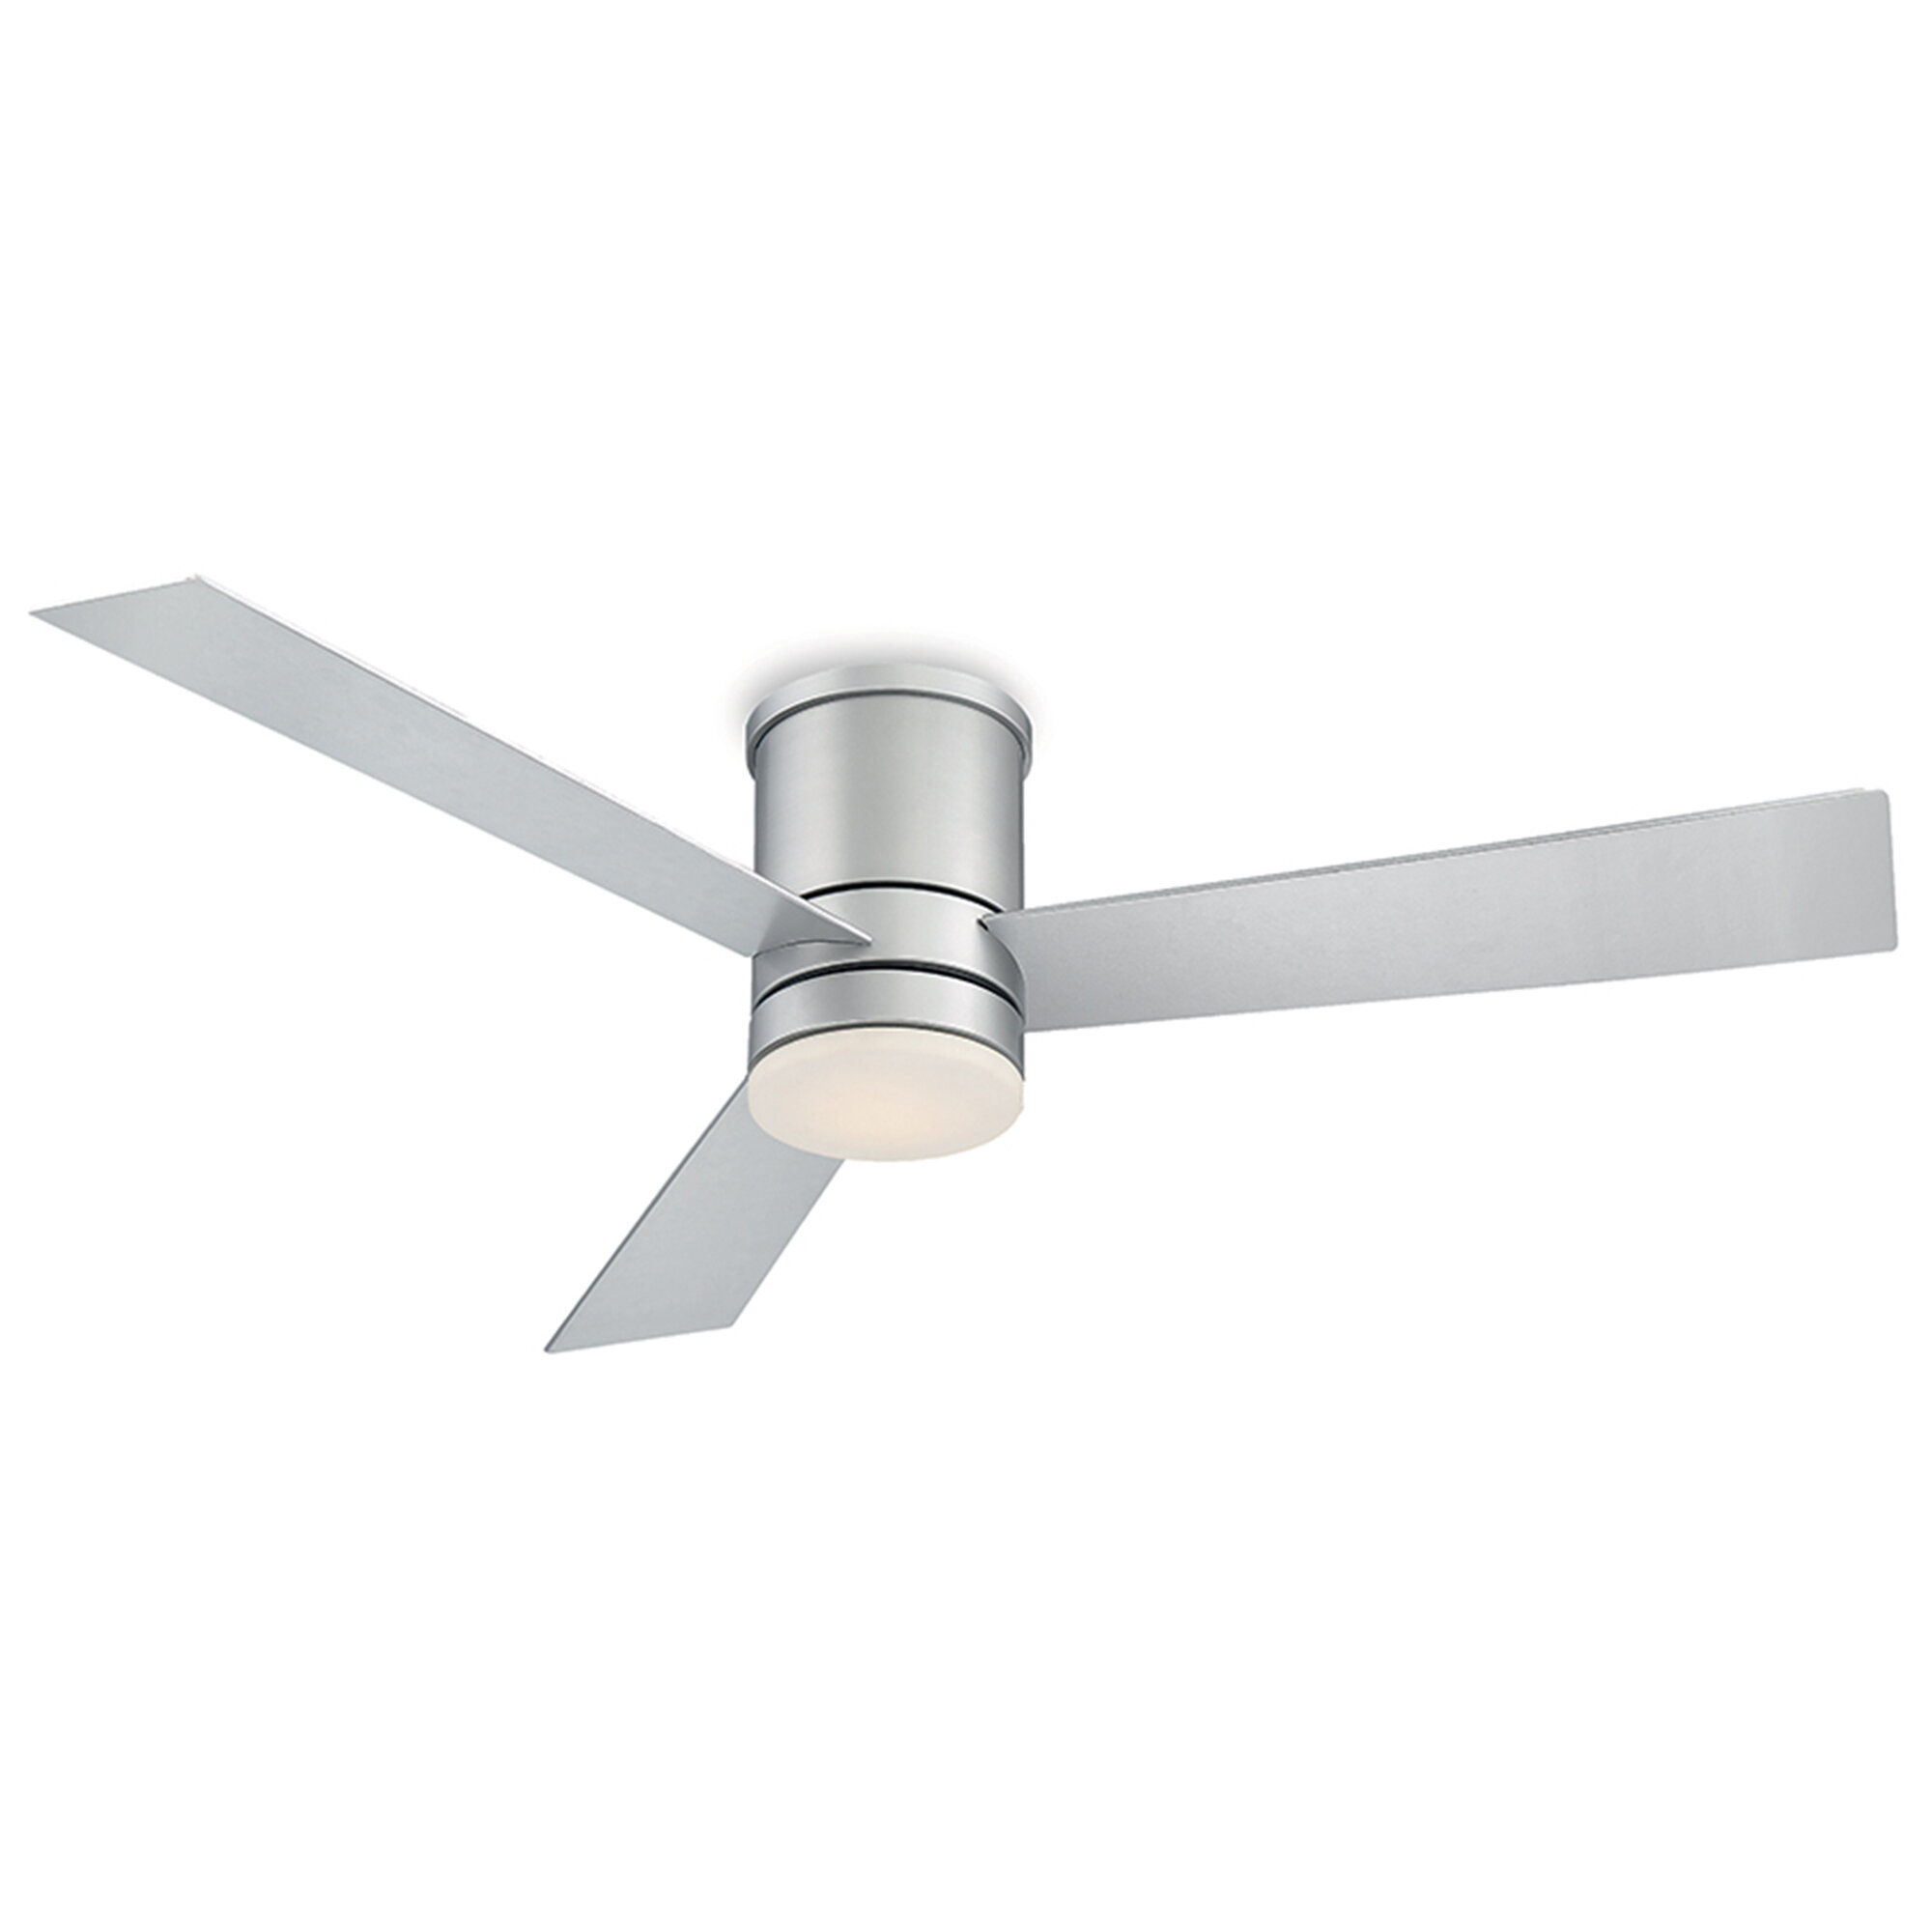 Modern Forms 52 Axis 3 Blade Outdoor Led Smart Flush Mount Ceiling Fan With Light Kit Included Reviews Wayfair